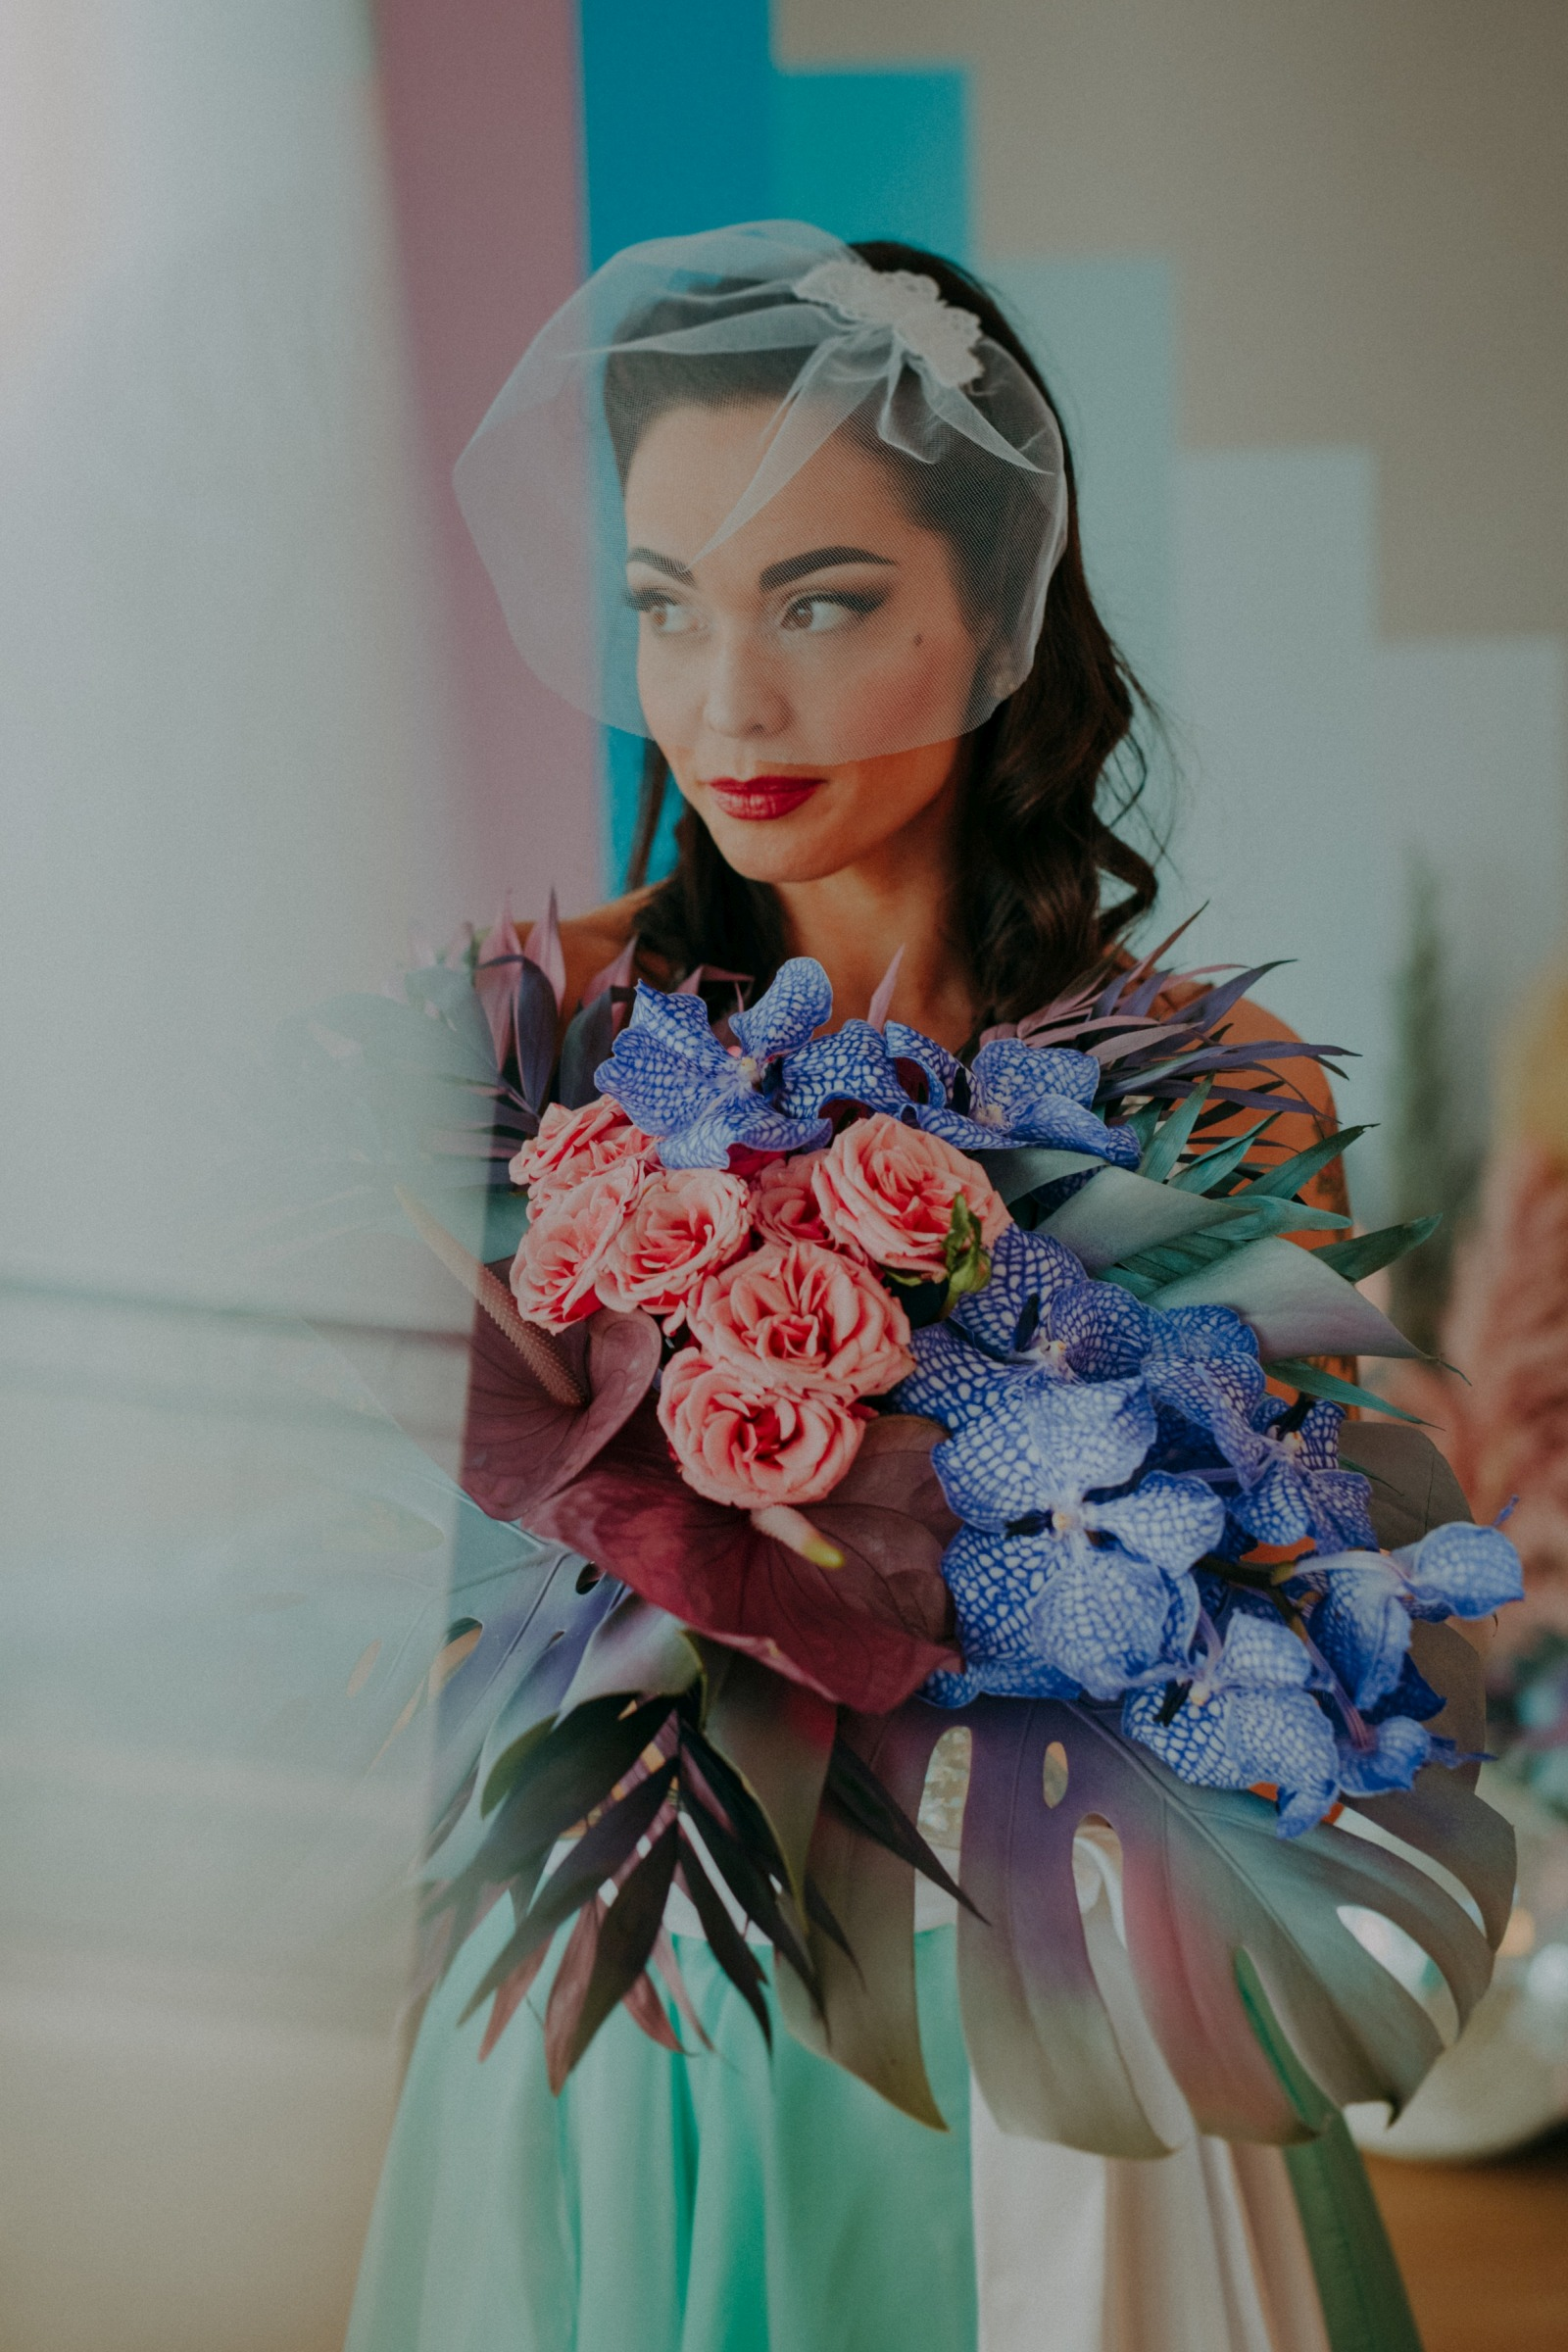 colourful pastel wedding - unconventional wedding - alternative wedding - colourful wedding dress - unique wedding dress - alternative wedding dress - unique retro wedding dress - alternative bridal wear - unique wedding flowers